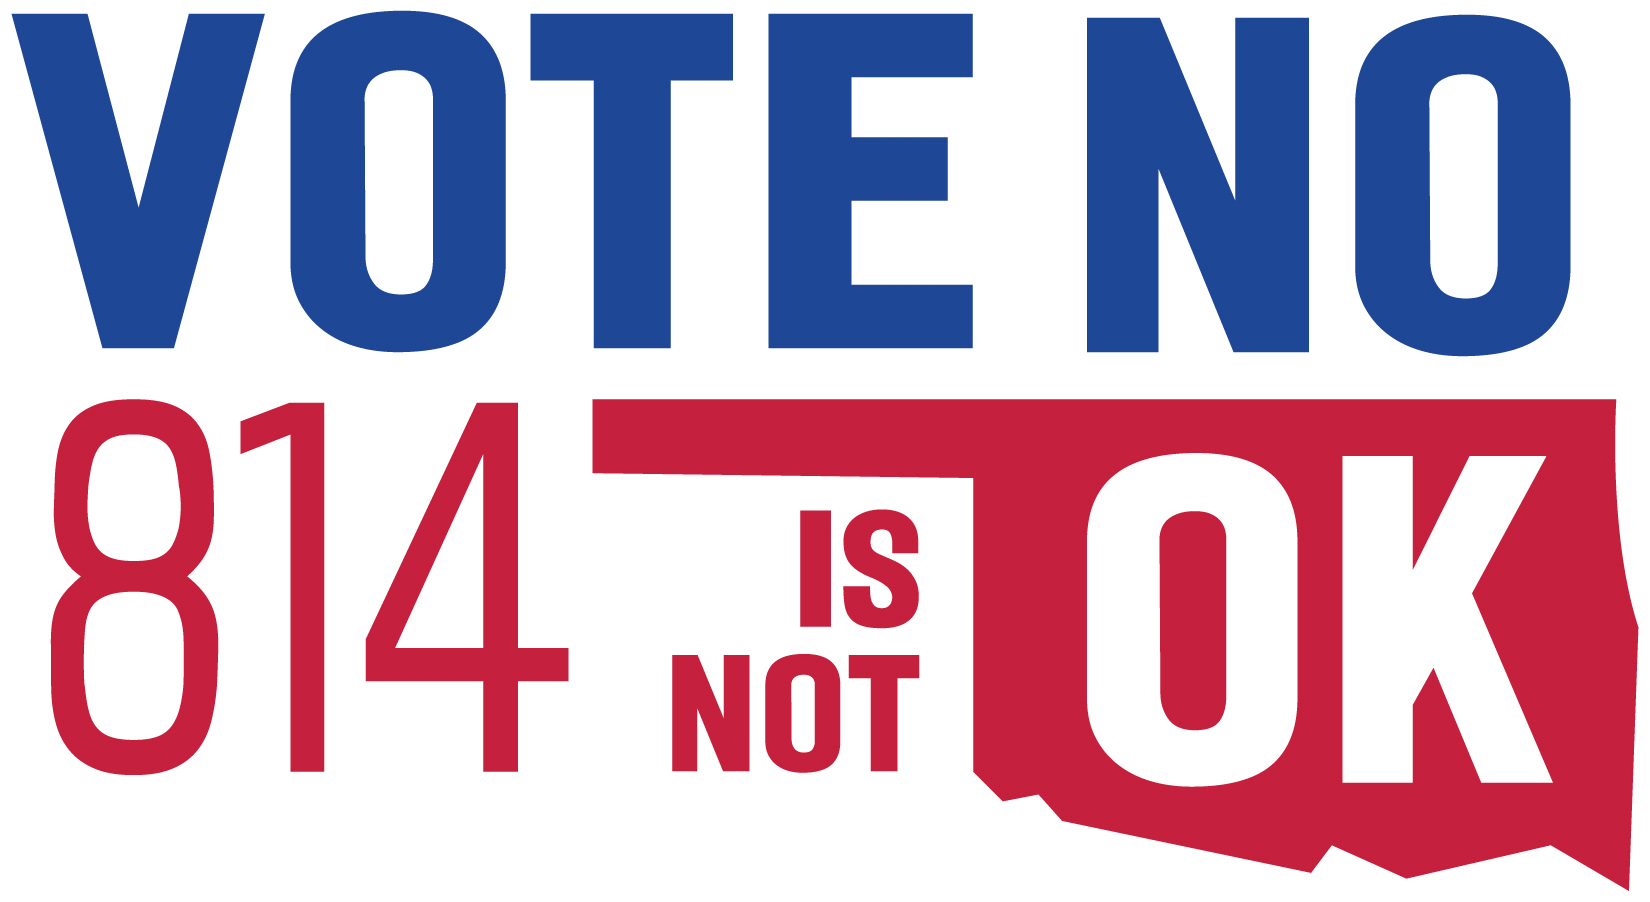 Vote no on 814 with Oklahoma outline